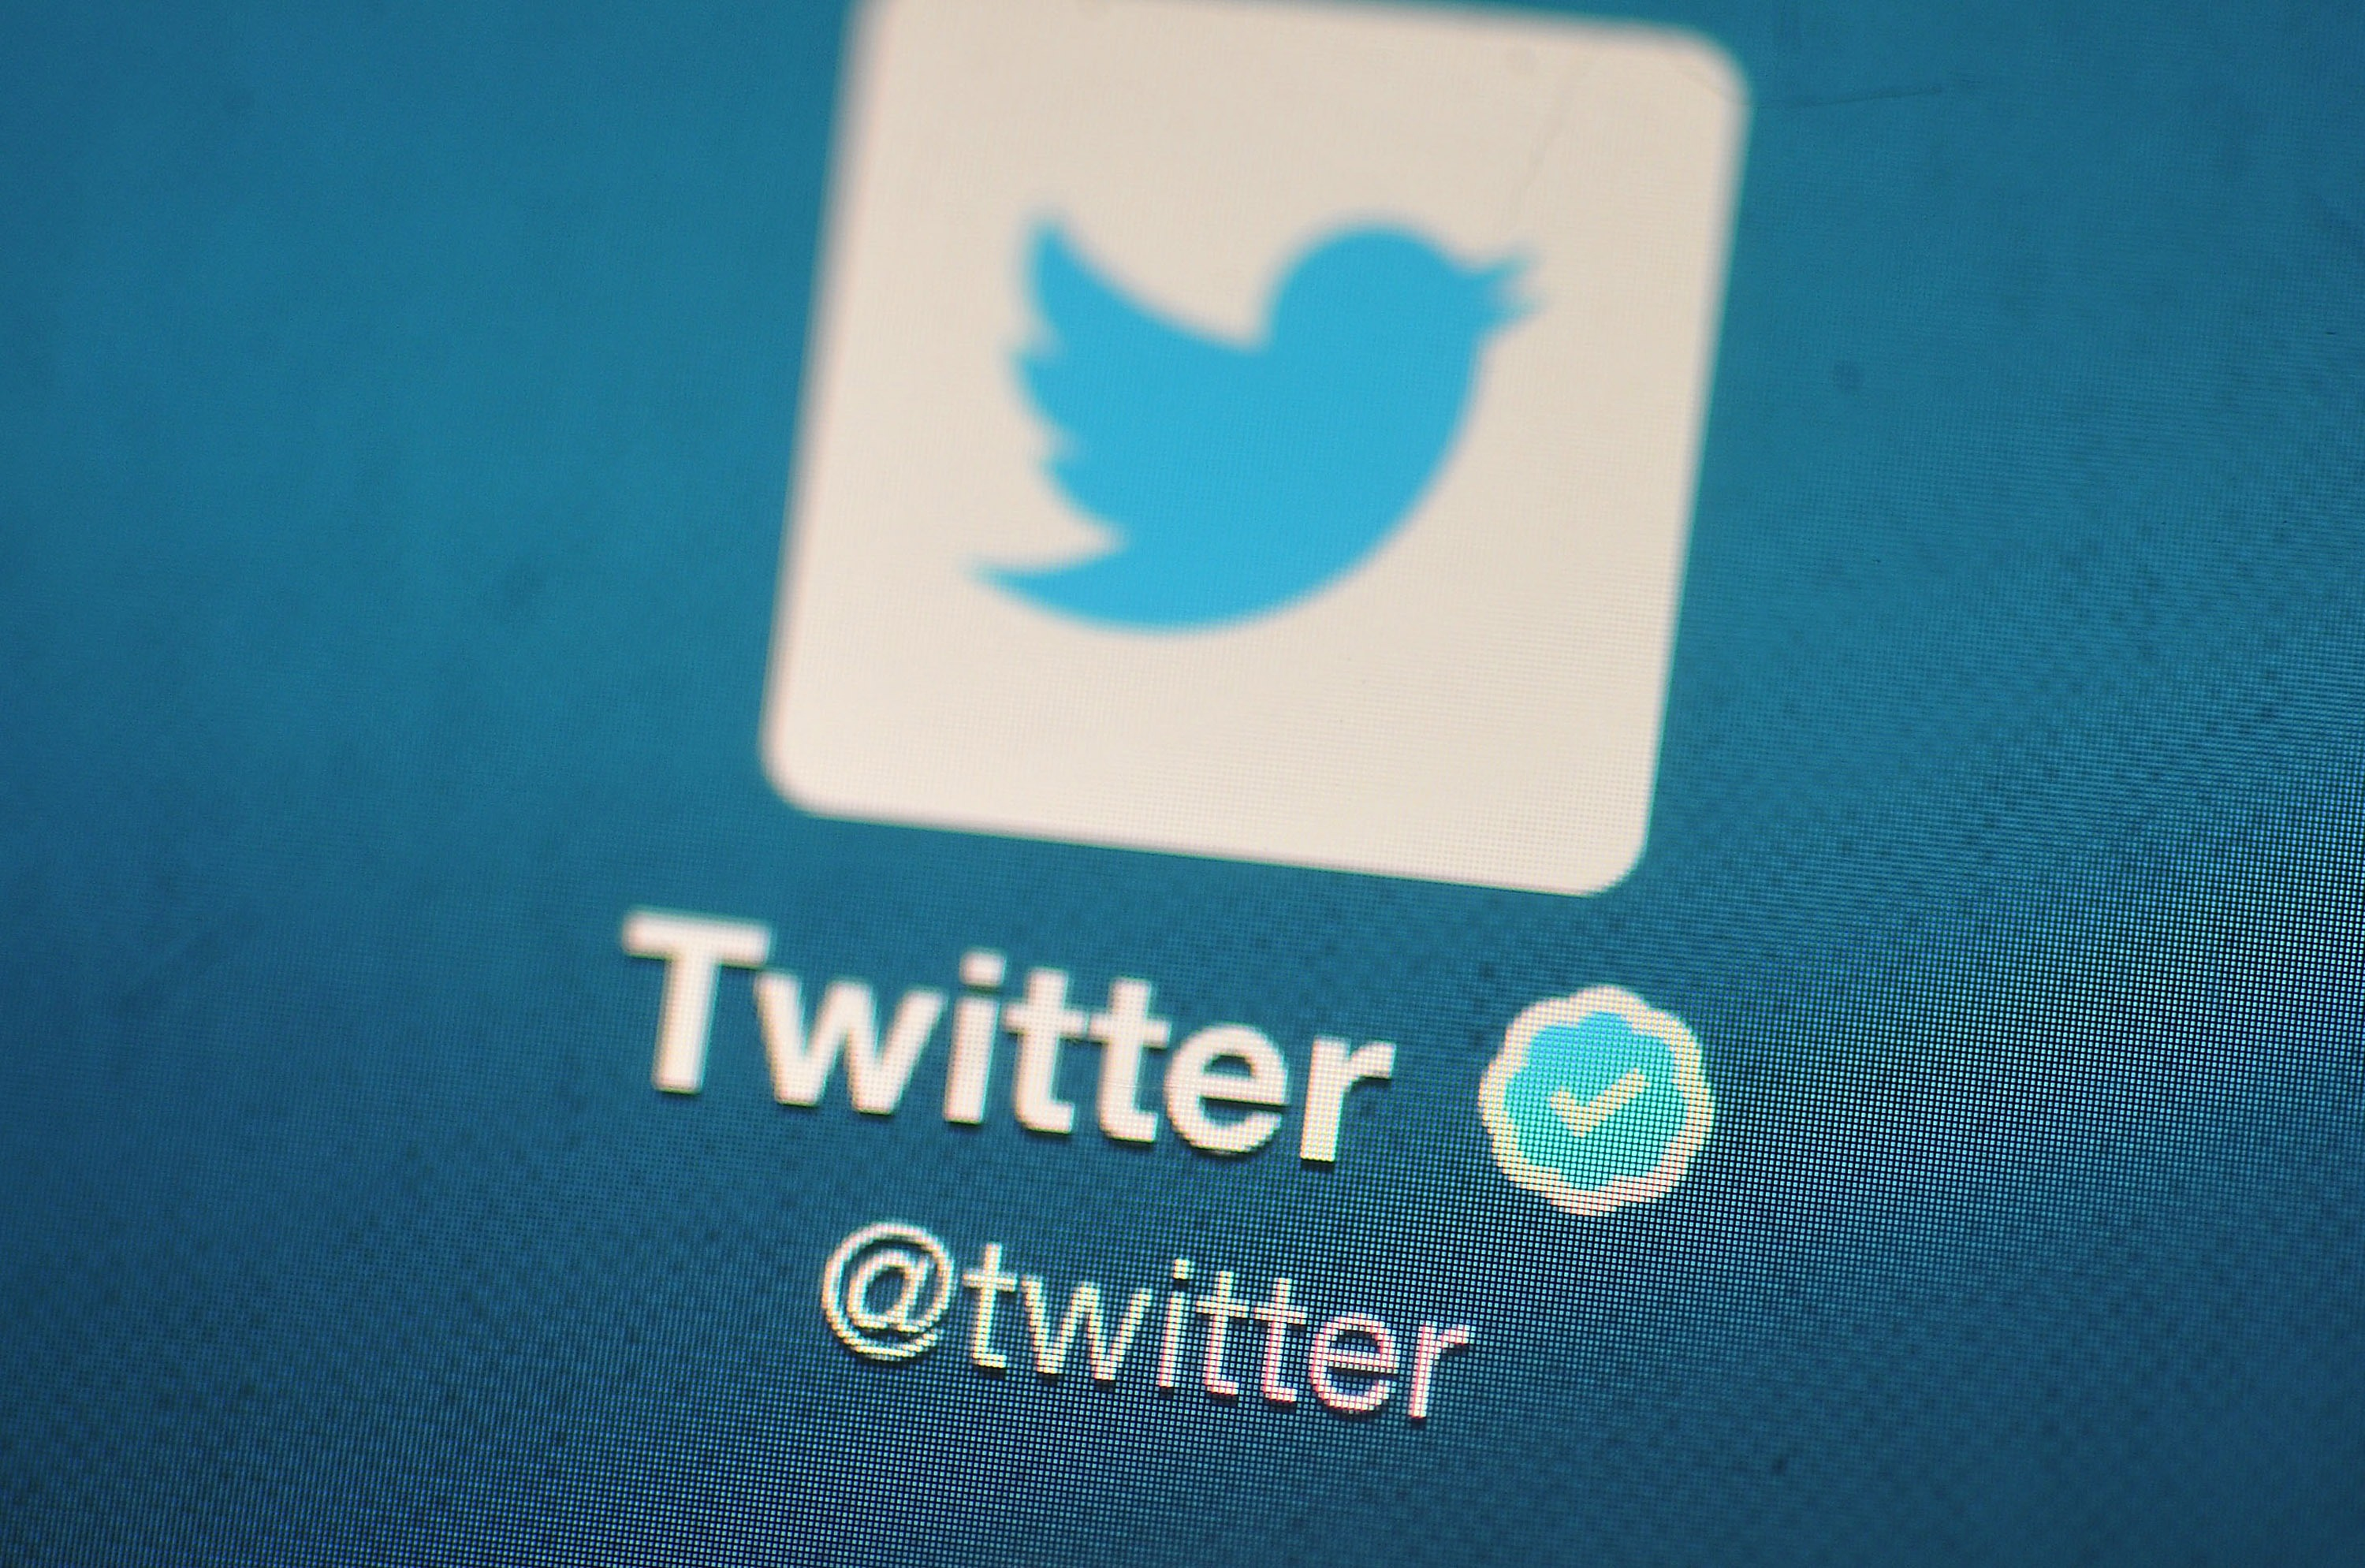 The Twitter logo is displayed on a mobile device.